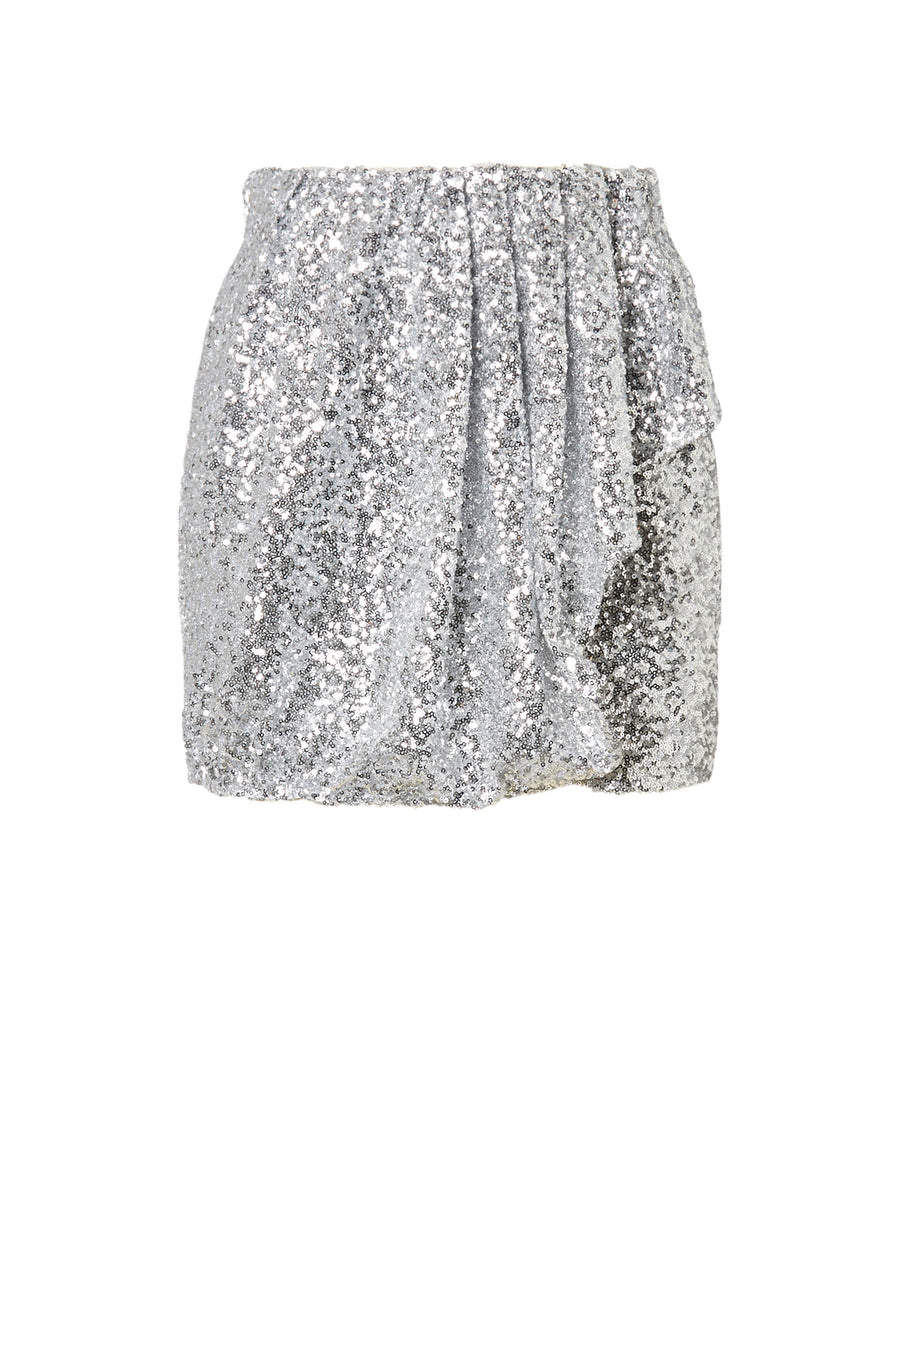 Sequin Pleat Skirt, drape front frill details, hidden zip closure at back and practical pockets, color silver